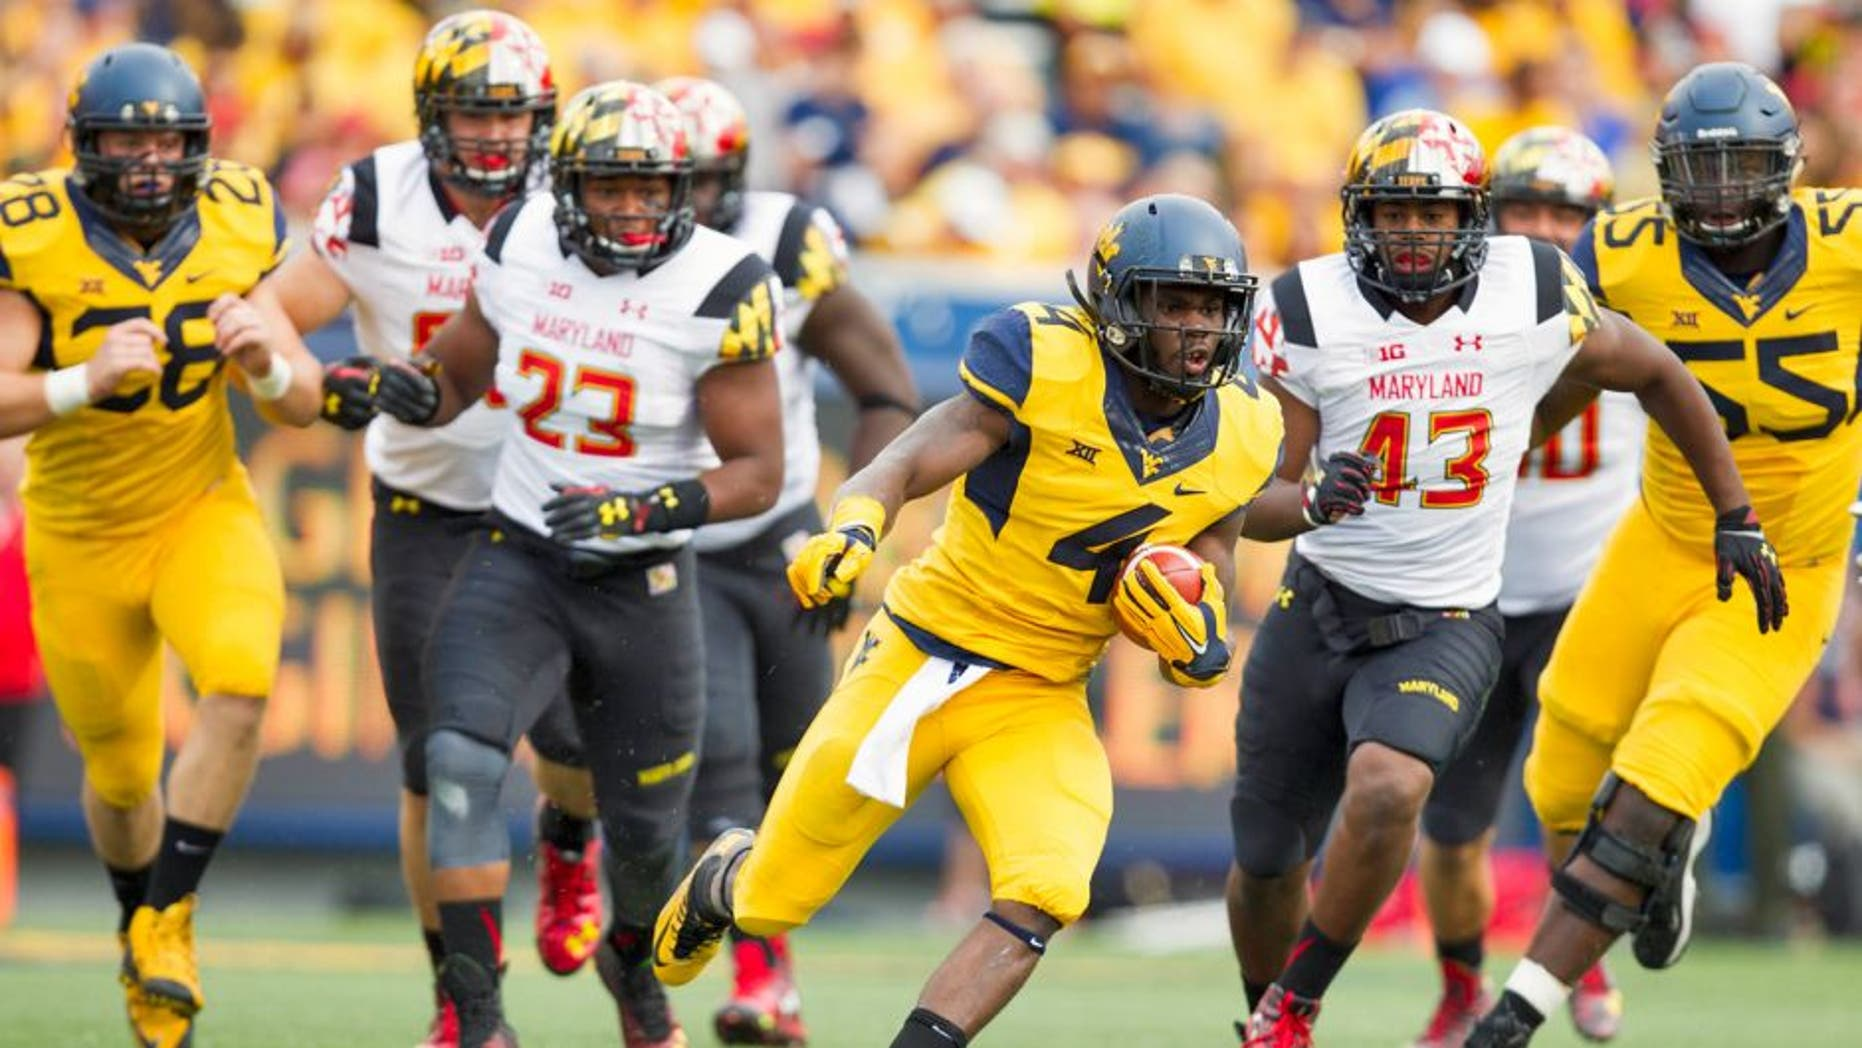 Sep 26, 2015; Morgantown, WV, USA; West Virginia Mountaineers running back Wendell Smallwood runs the ball against the Maryland Terrapins during the first quarter at Milan Puskar Stadium. Mandatory Credit: Ben Queen-USA TODAY Sports